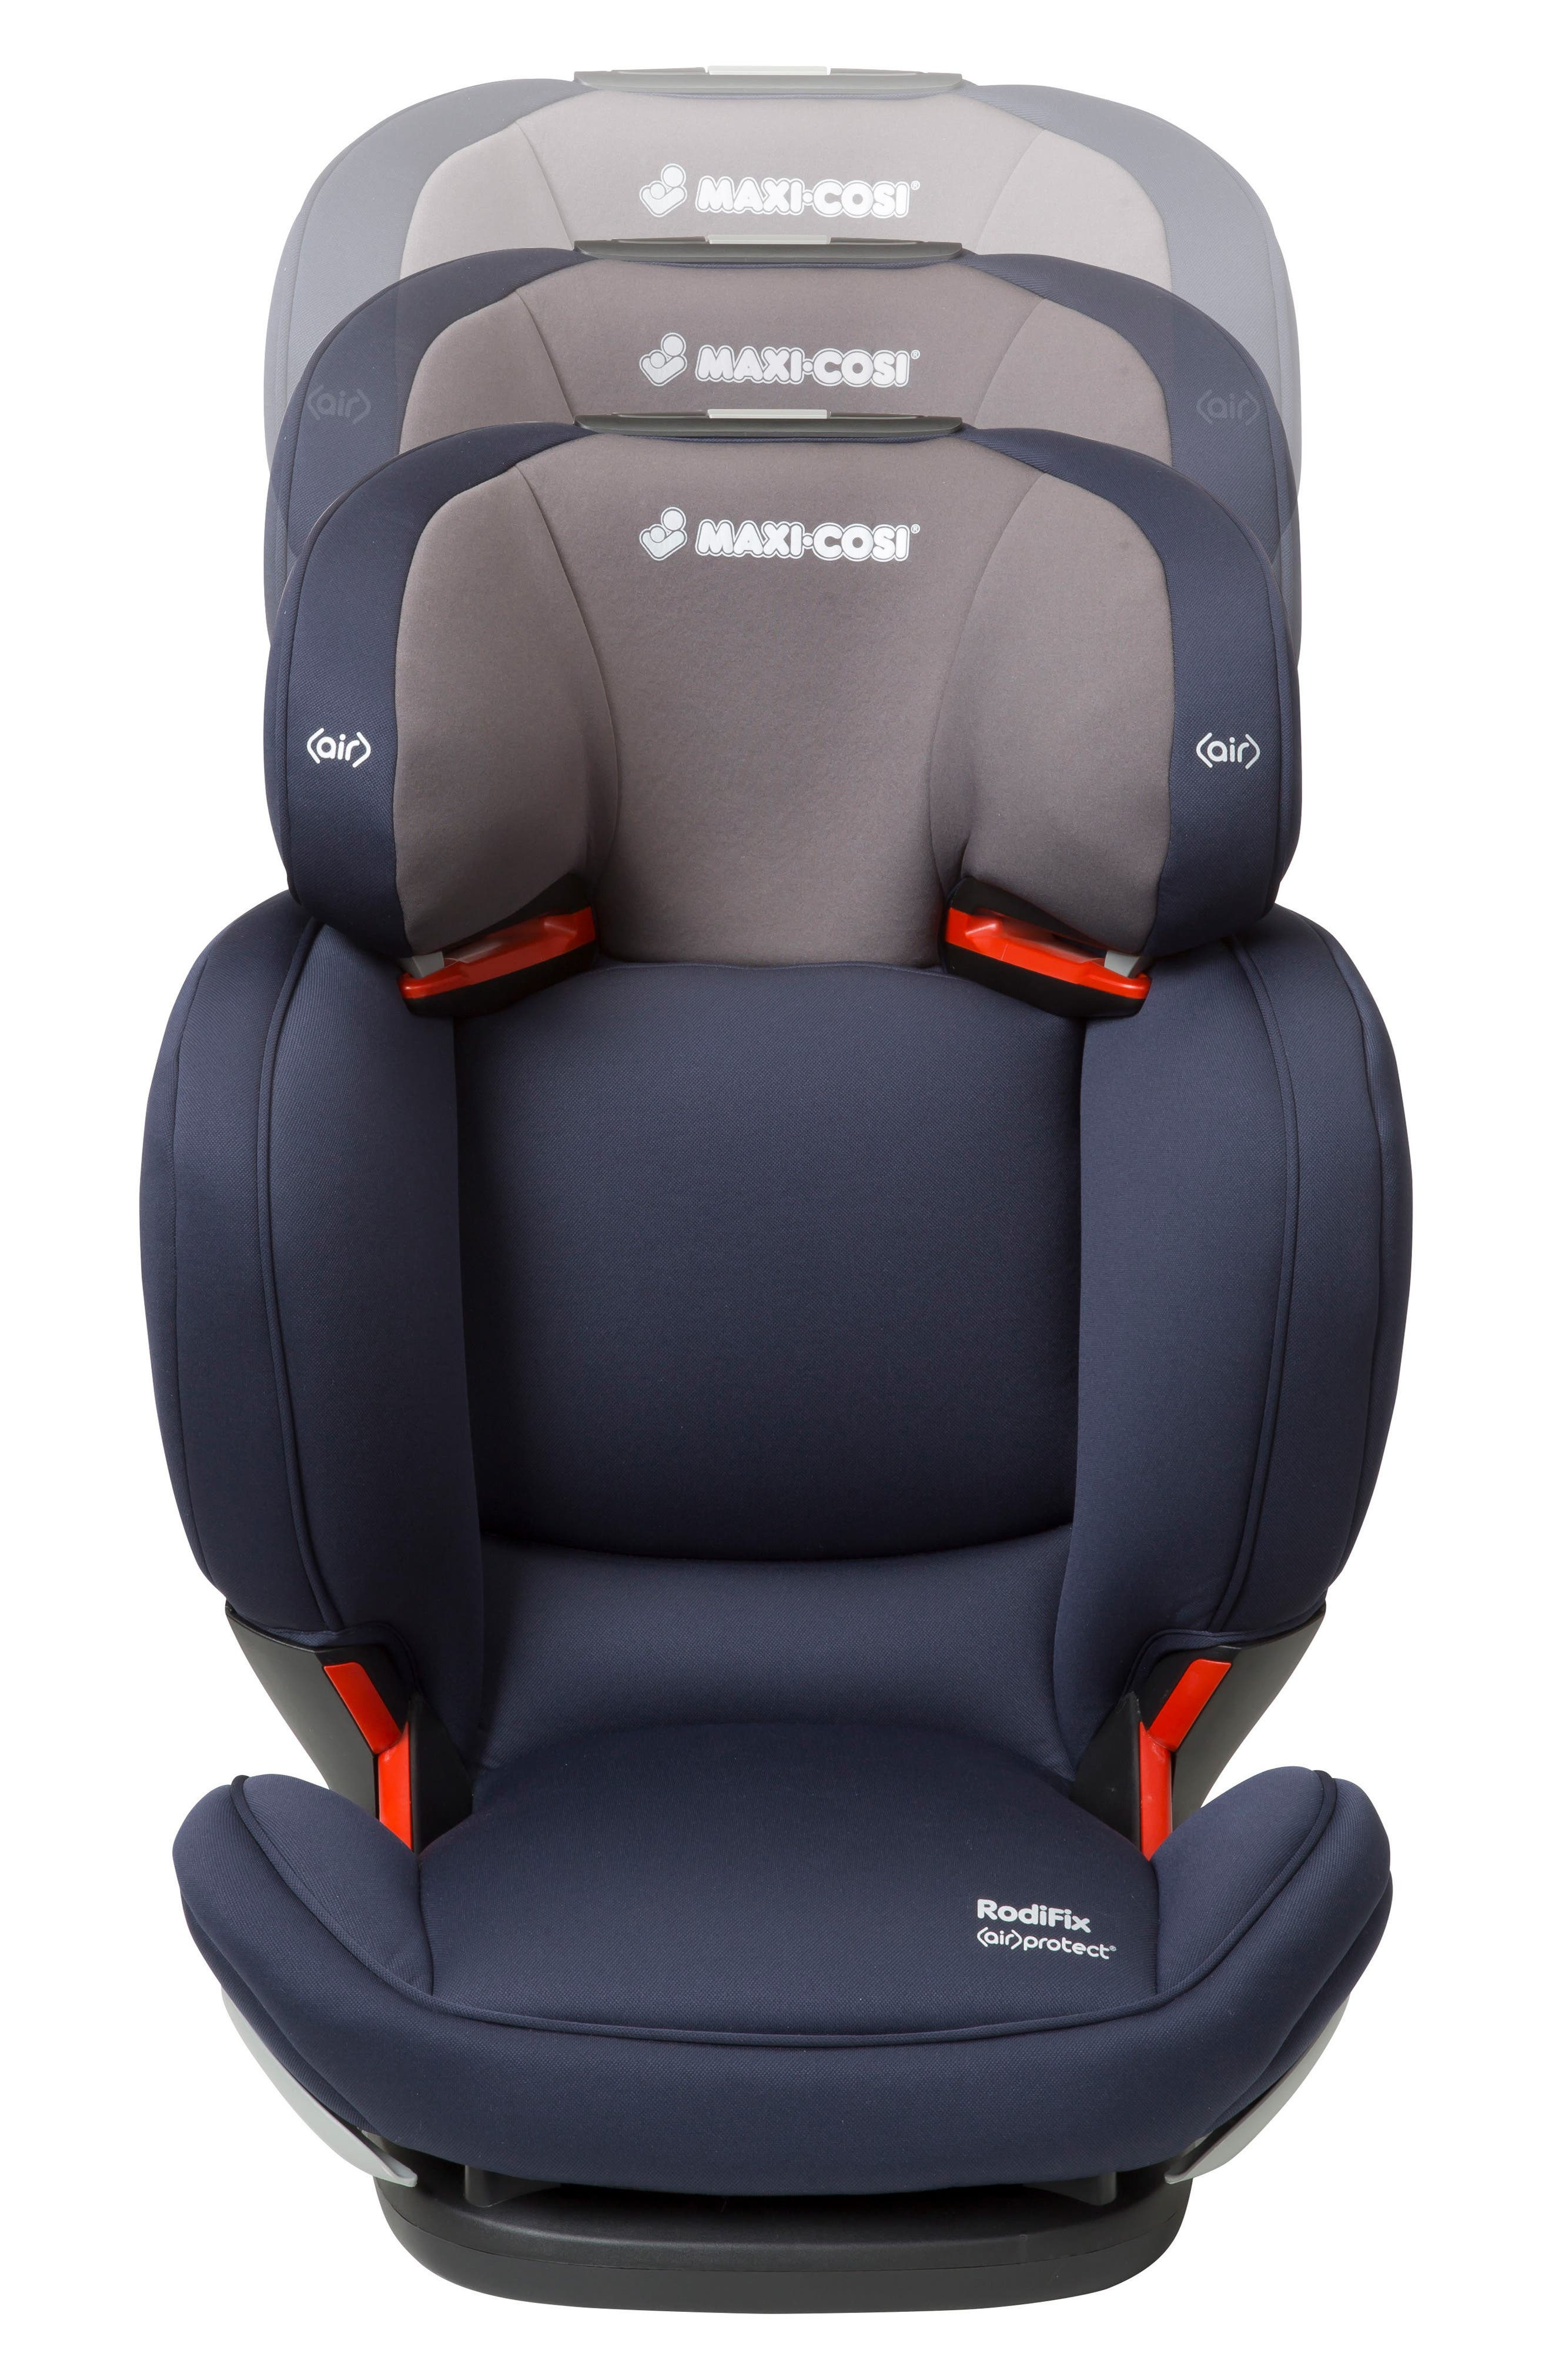 RodiFix Booster Car Seat,                             Alternate thumbnail 2, color,                             Navy